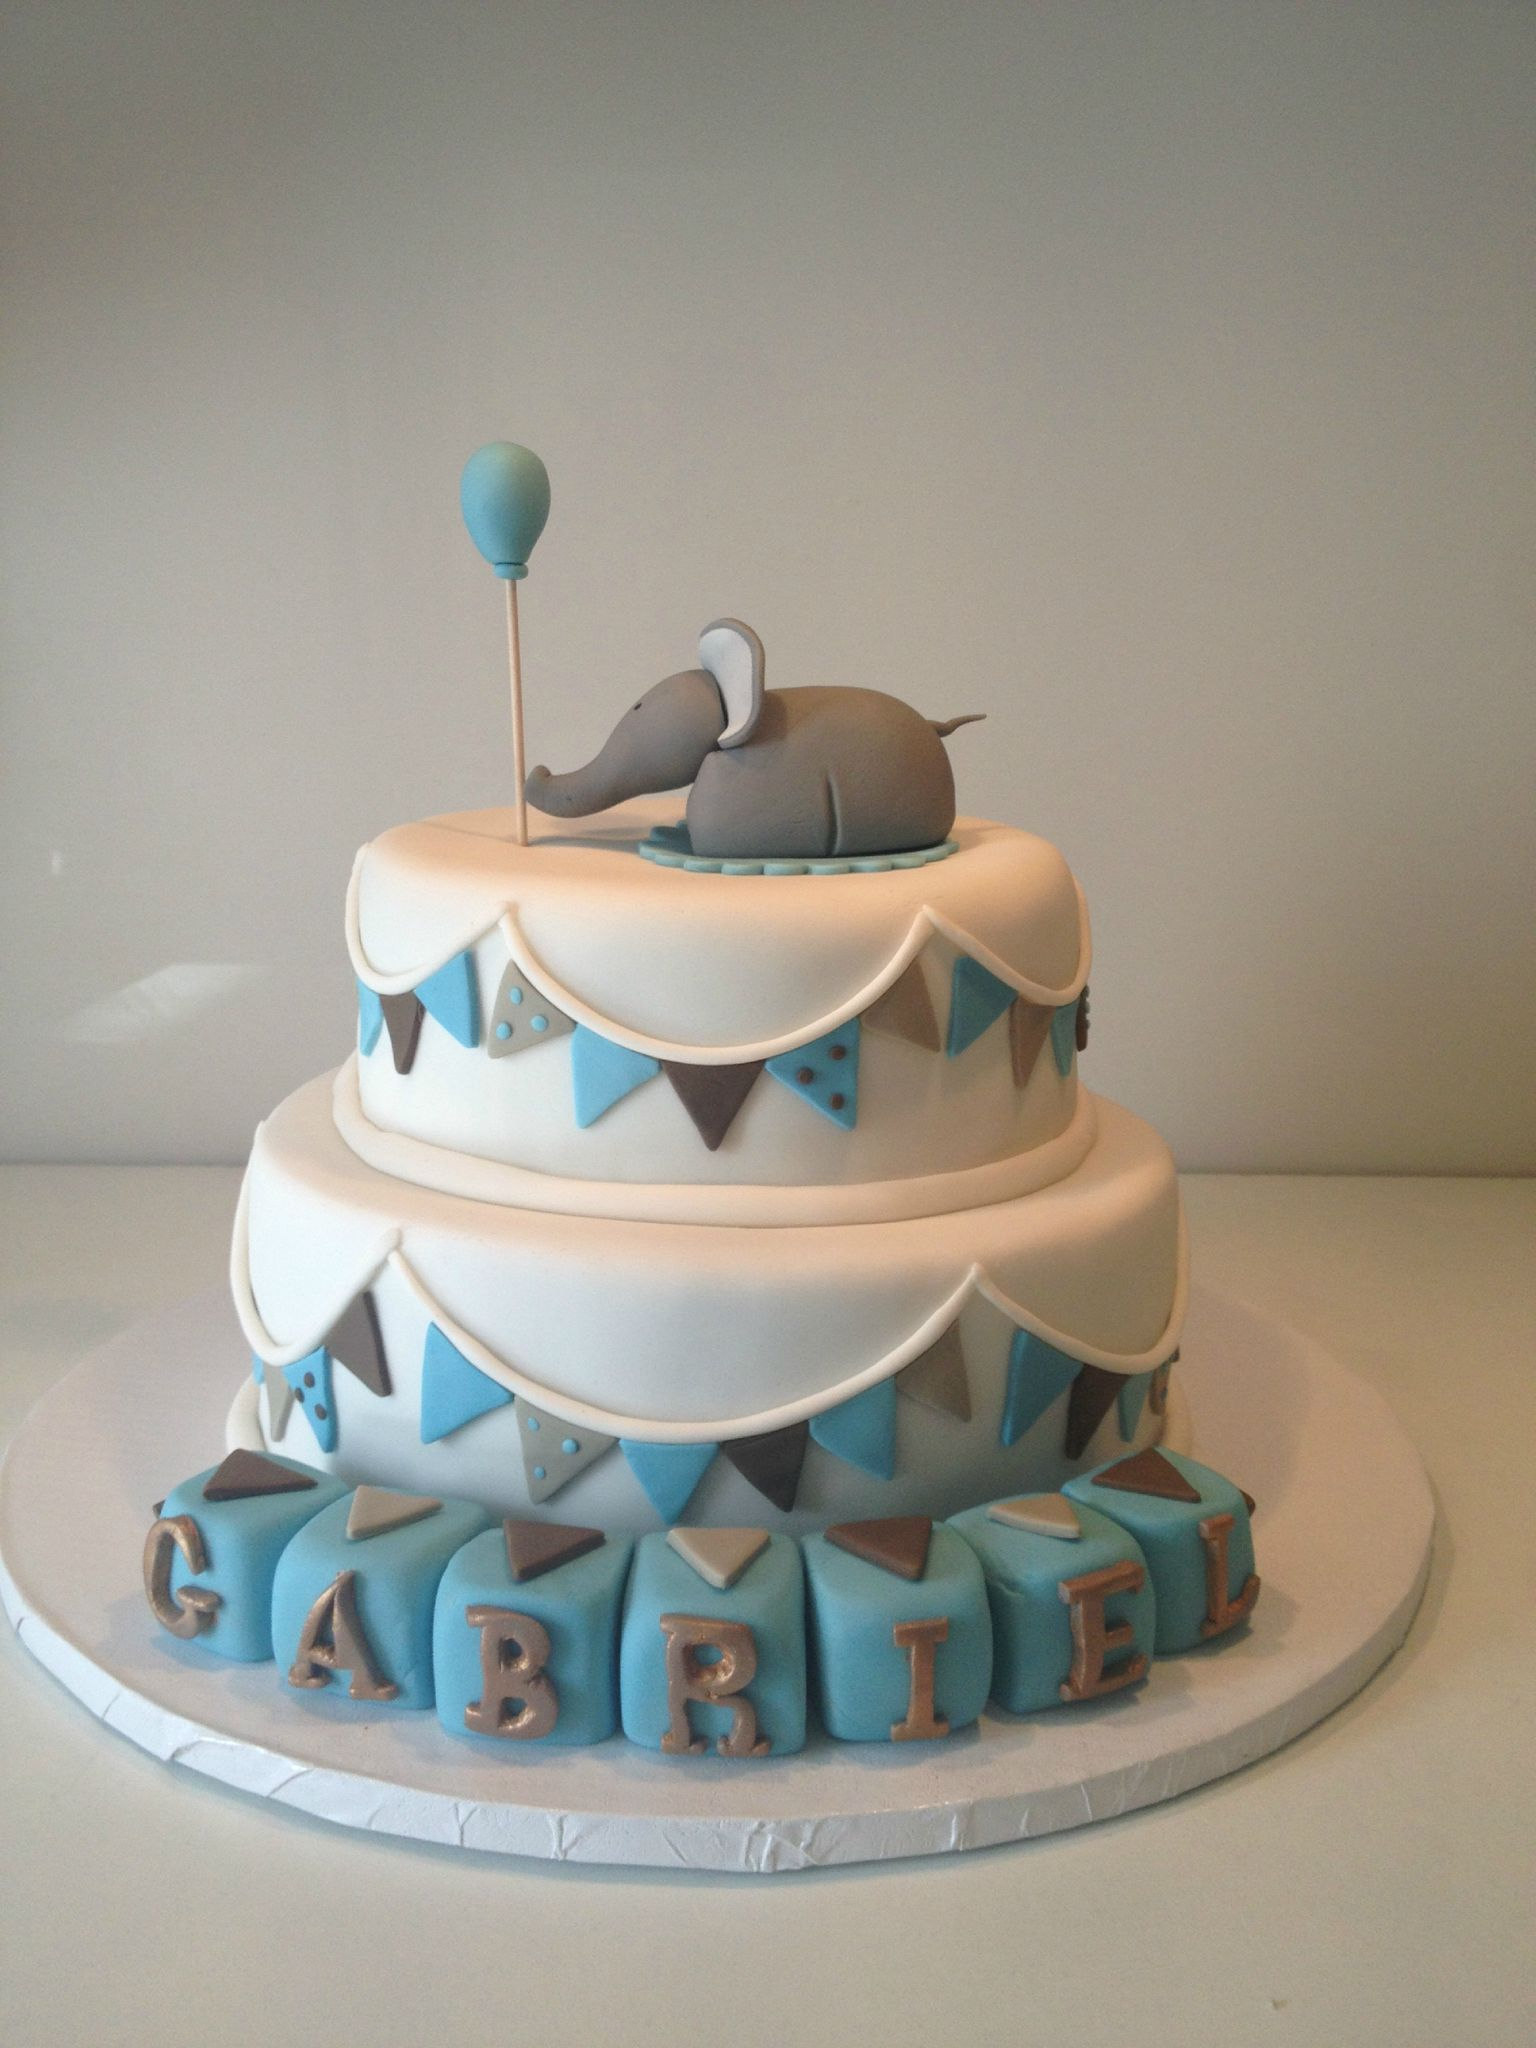 Decoration gateau bapteme quebec for Decoration quebec